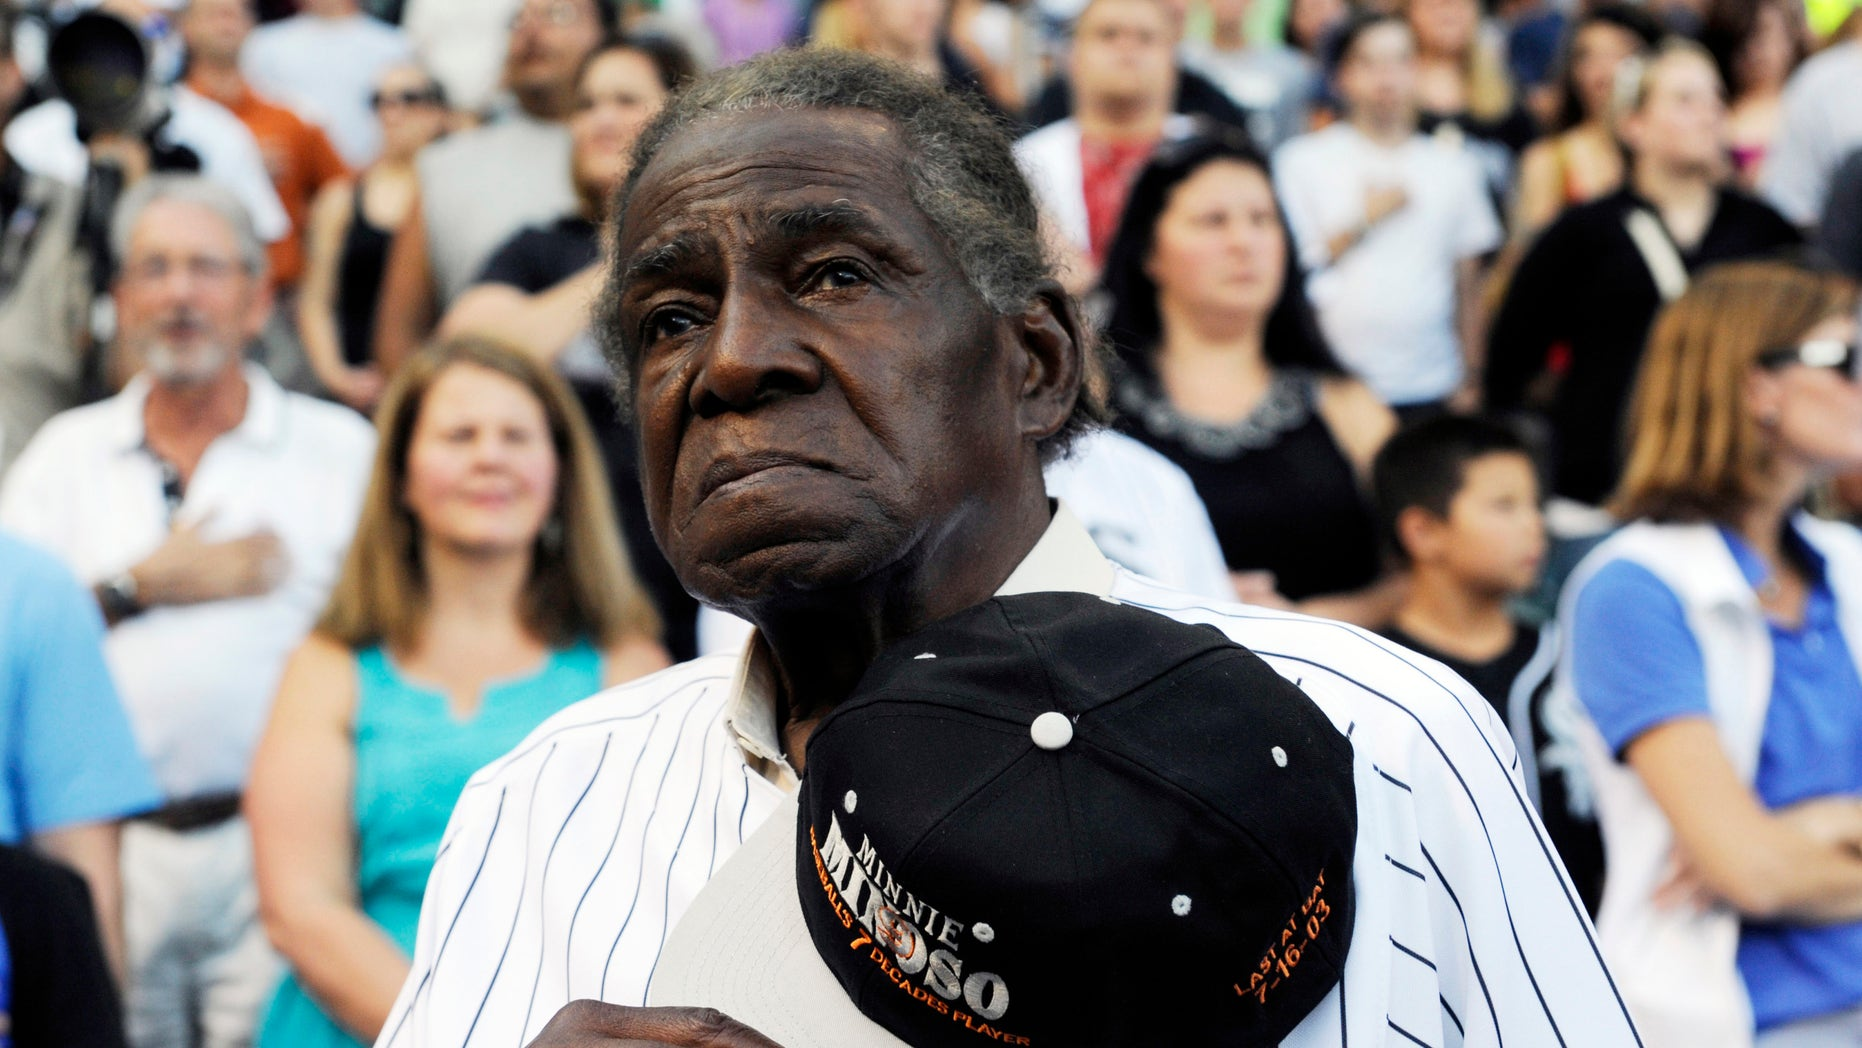 FILE - In a Aug. 24, 2013 file photo, former Negro Leaguer and Chicago White Sox player Minnie Minoso stands during the national anthem before a baseball game between the Chicago White Sox and the Texas Rangers, in Chicago.  Major league baseball's first black player in Chicago, Minnie Minoso, has died. The Cook County medical examiner confirmed his death Sunday, March 1, 2015. There is some question about his age but the White Sox say he was 92. (AP Photo/David Banks, File)